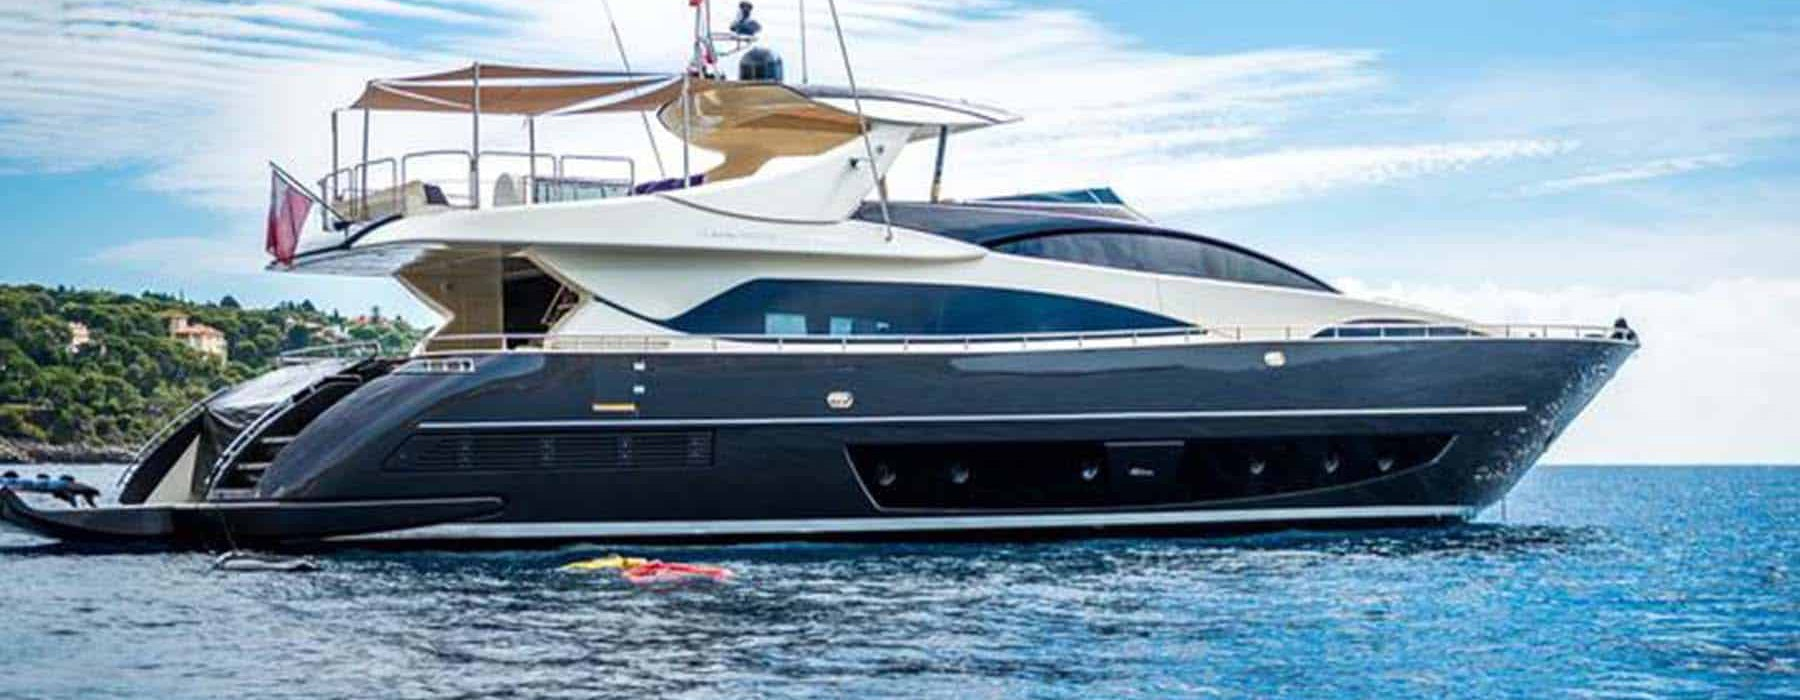 News - Riva EVA SOFIA Yacht Sales Update